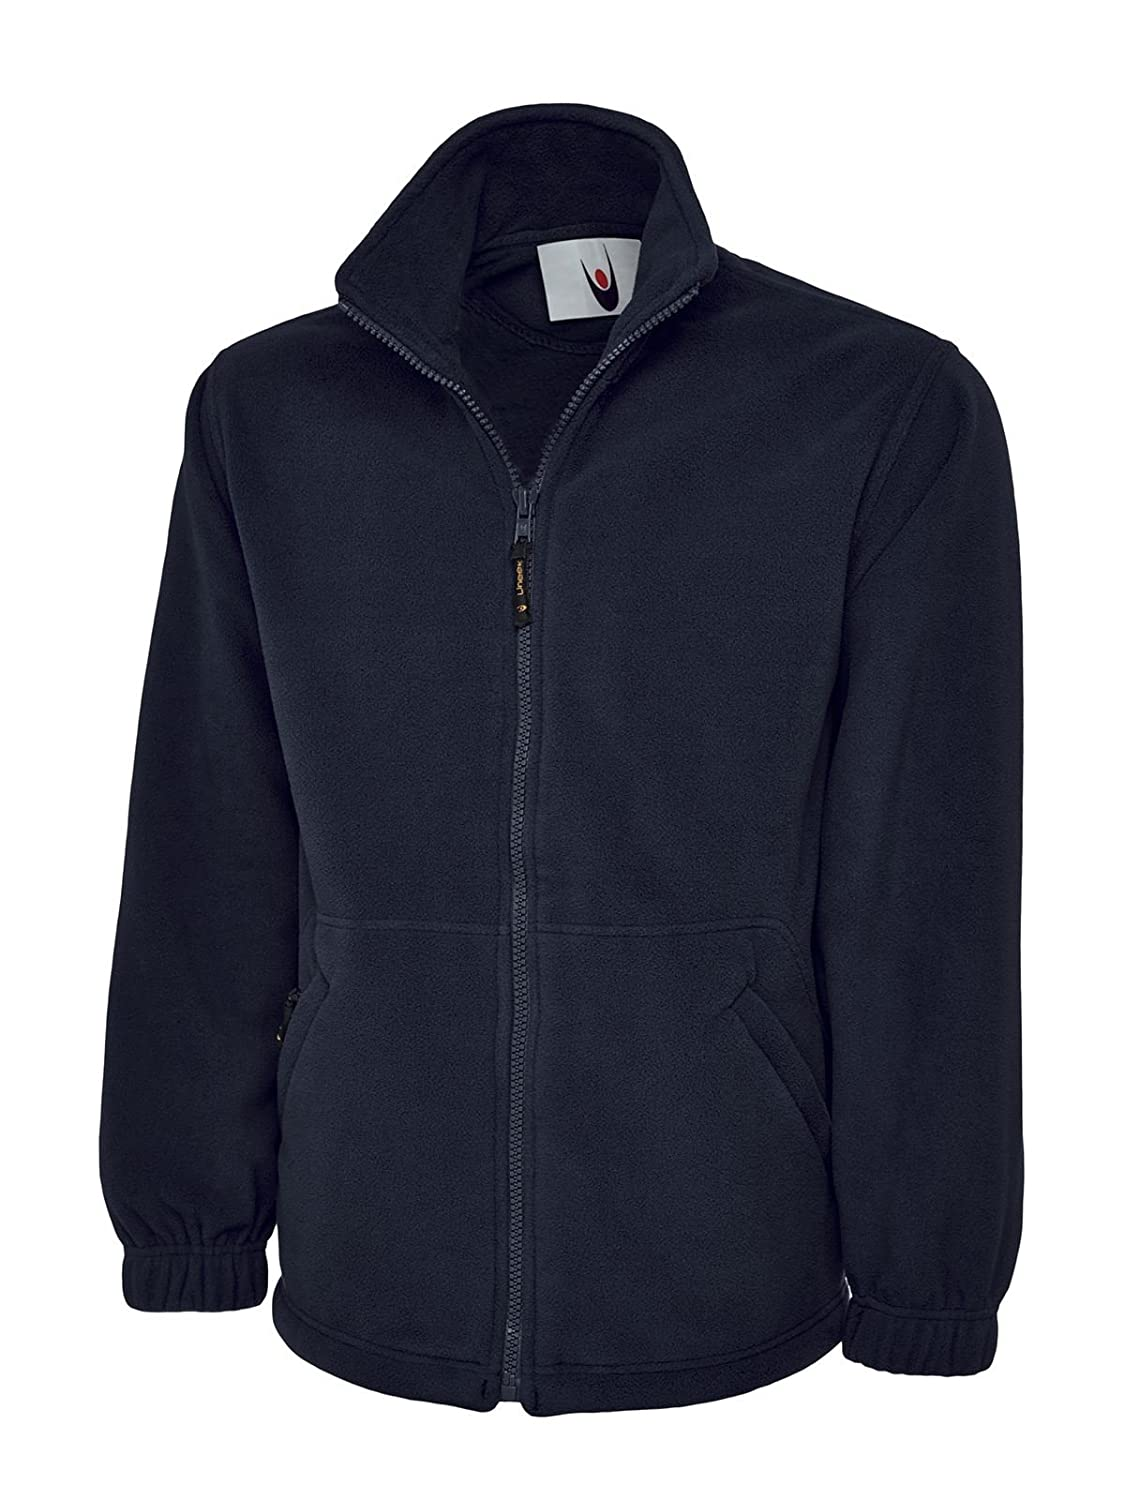 Uneek Clothing-Mens-Premium Full Zip Micro Fleece Jacket-380 gsm-Navy-4XL Starlite 601NY4XL